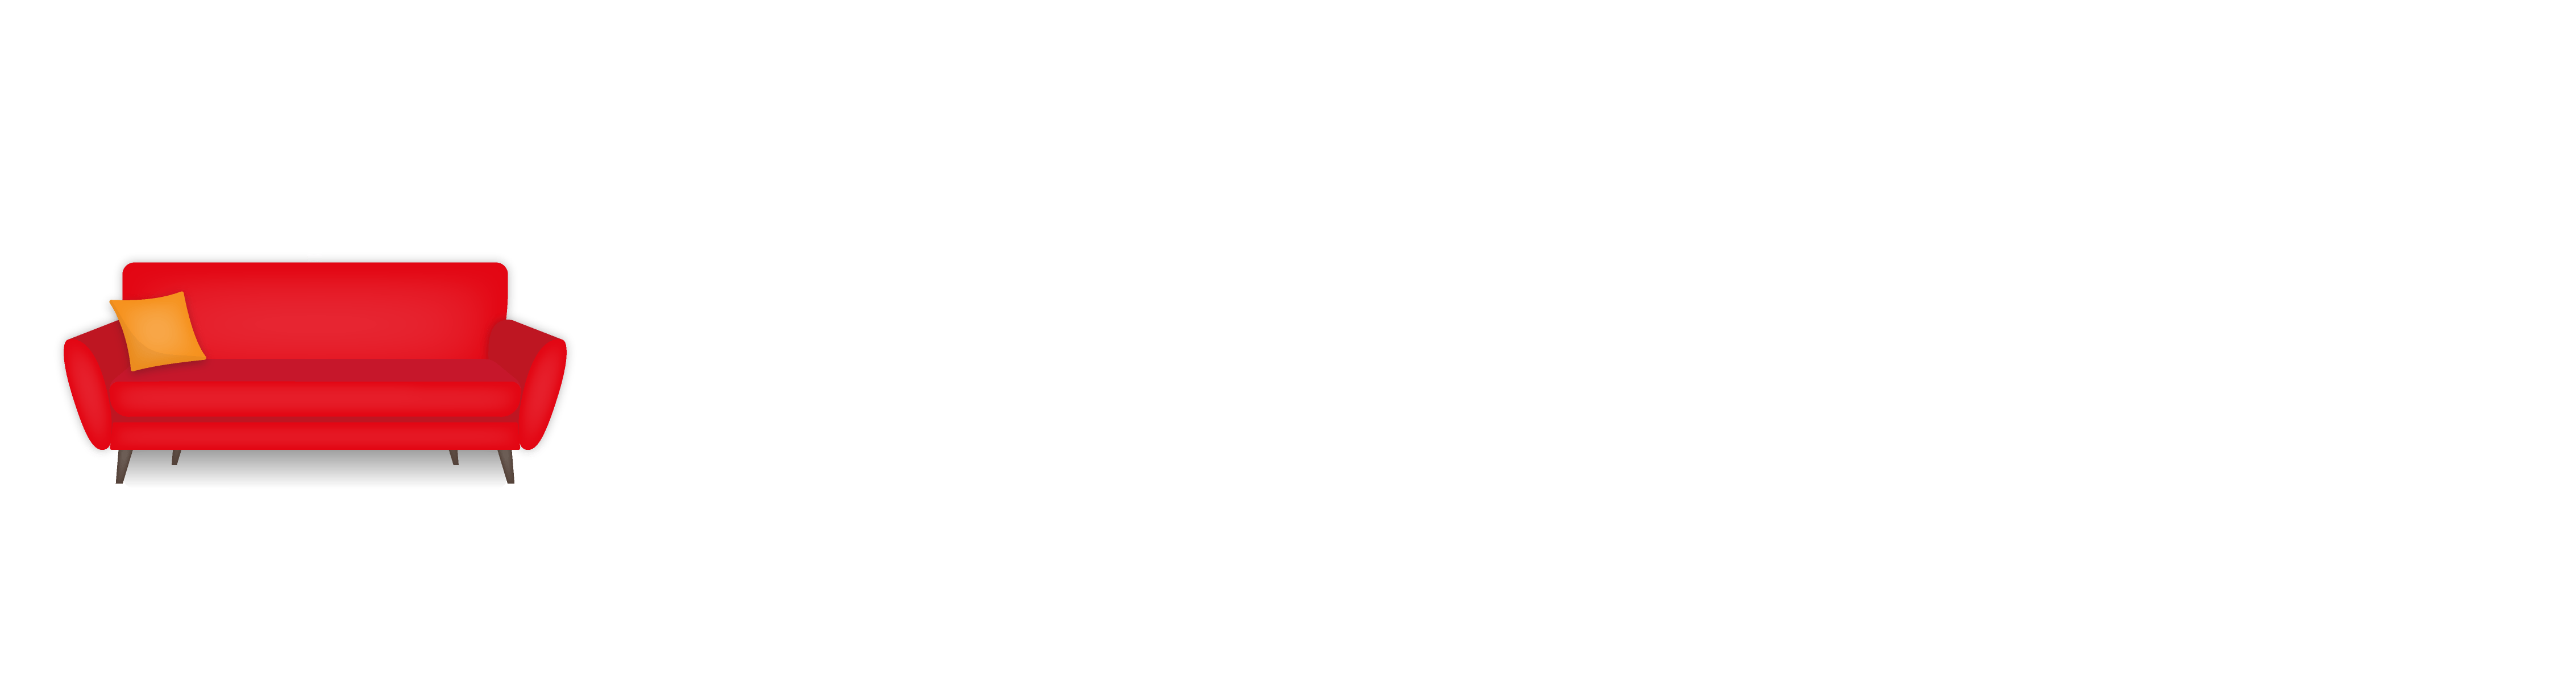 Surrealty-logo_horizontal_reverse